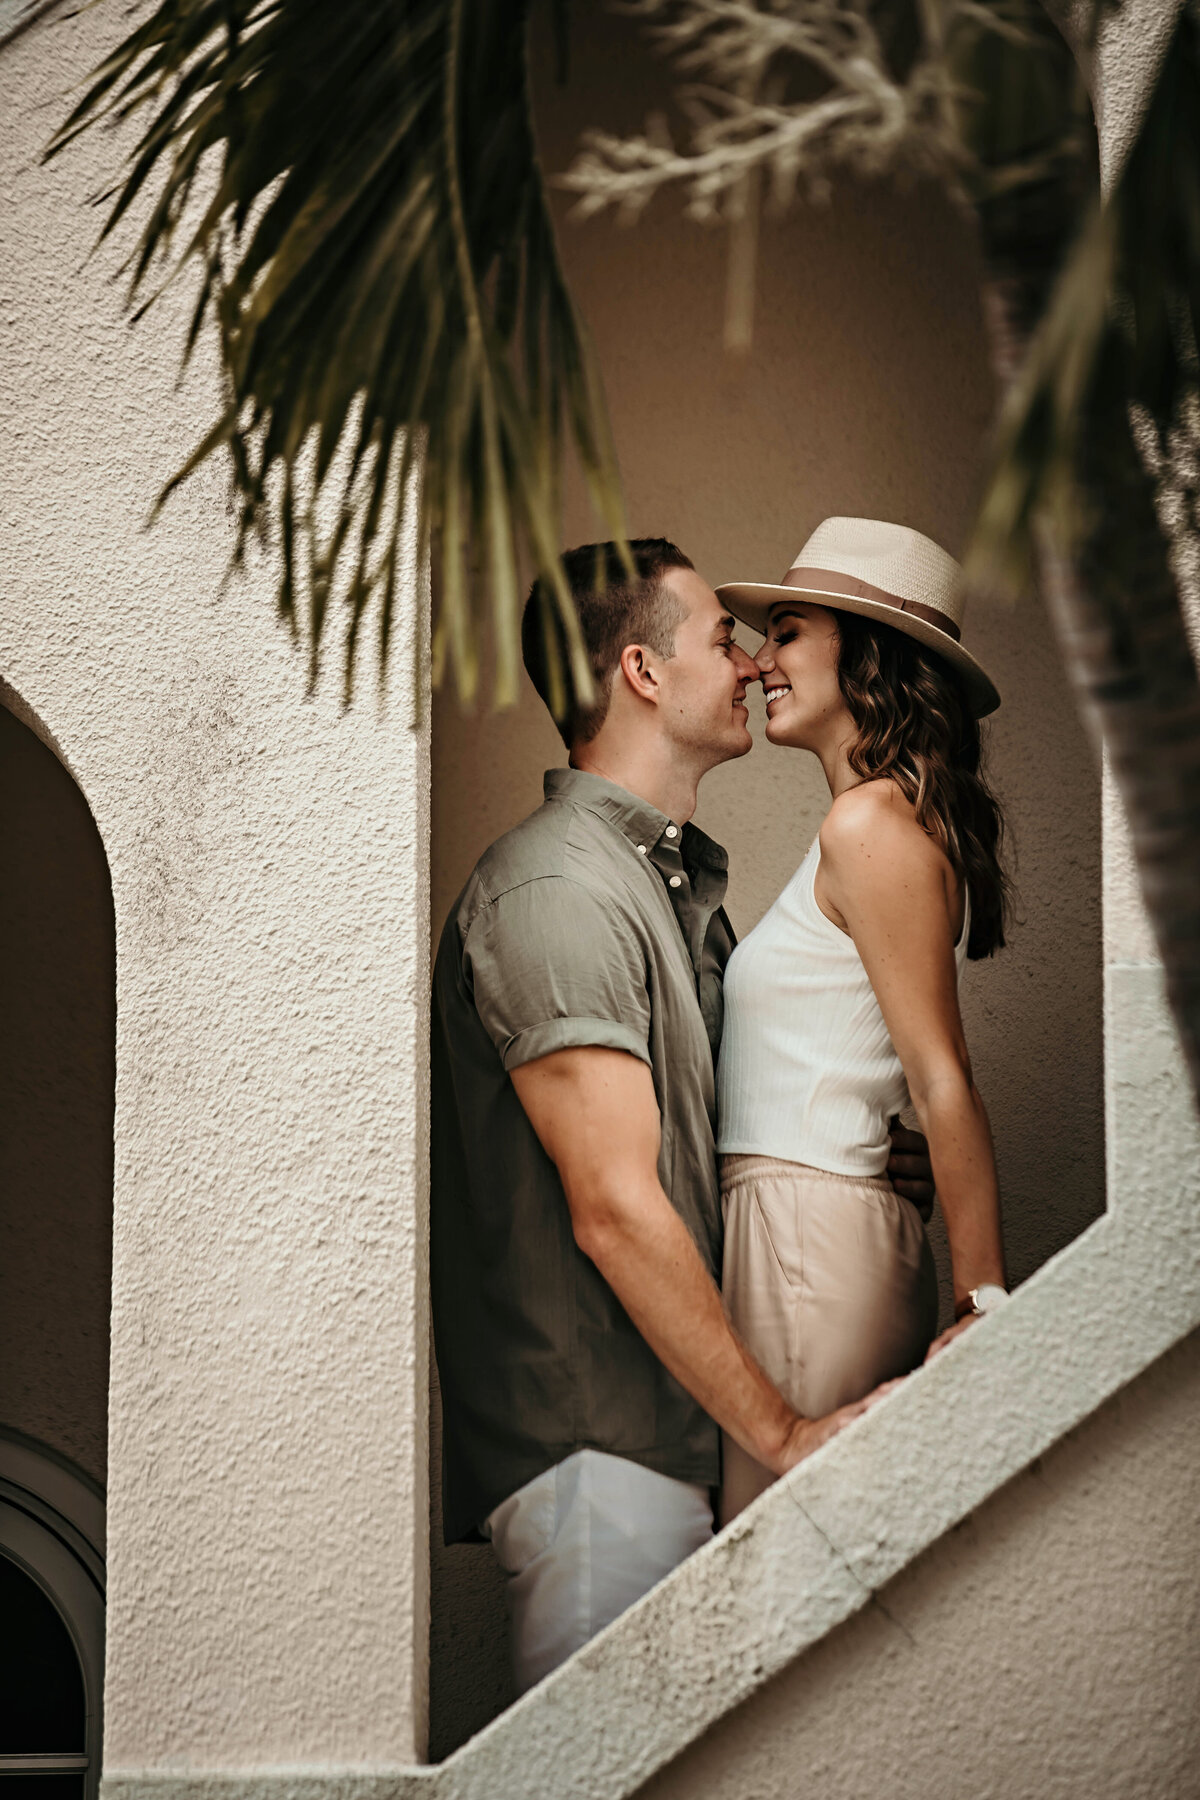 A picture of a couple marking their engagement at a vintage building, pausing to romantically gaze in each other's eyes as they stand close together by Garry & Stacy Photography Co - Tampa FL engagement photography